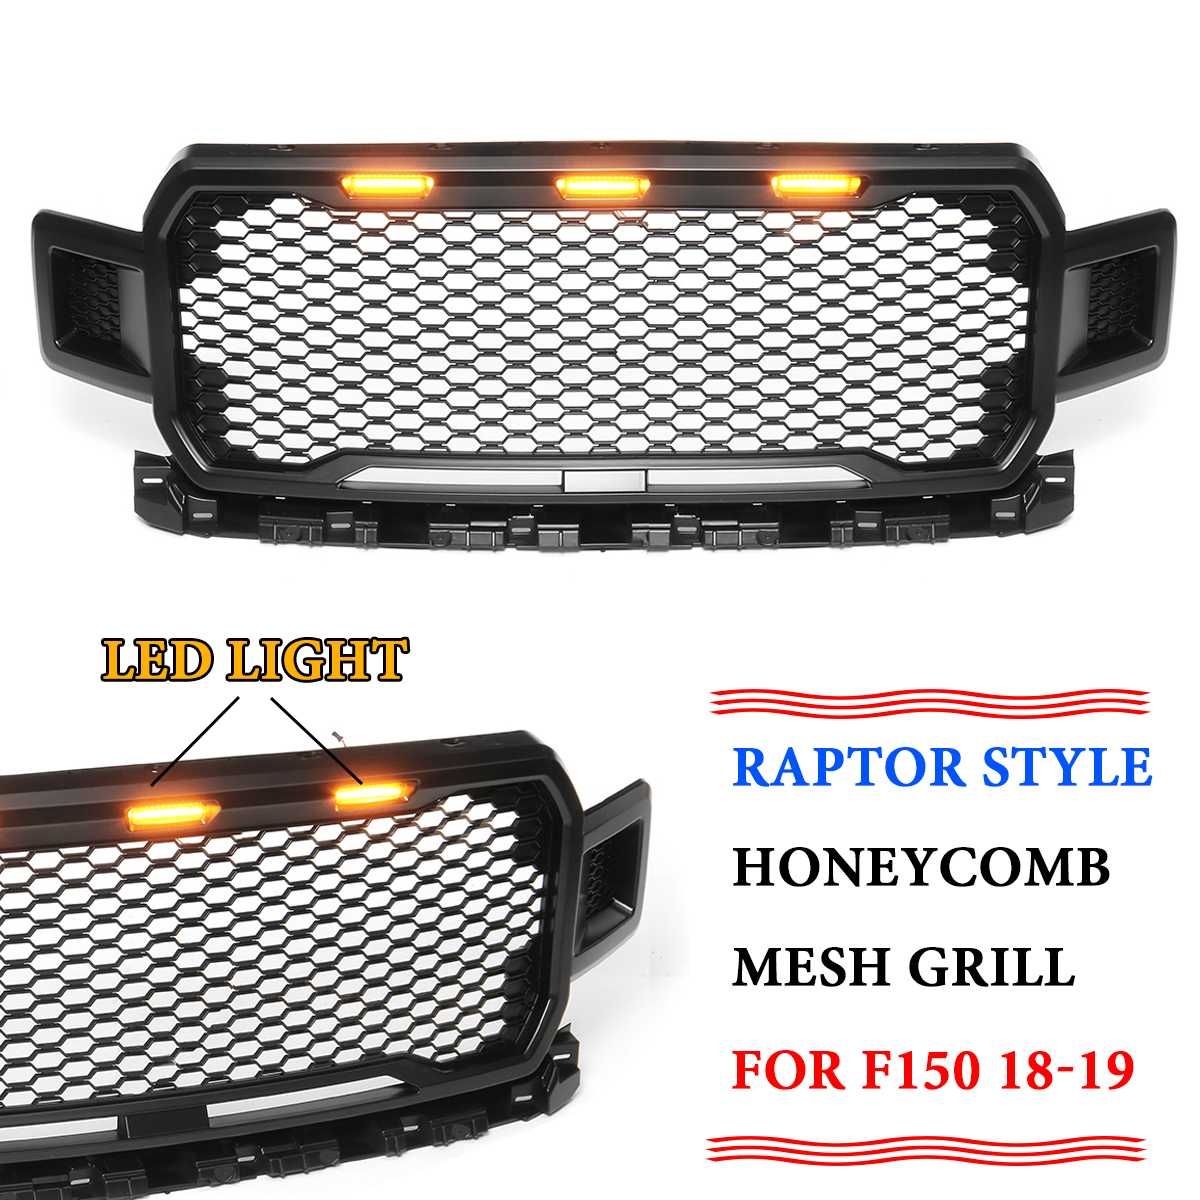 New Style Modified Front Racing Grille Raptor Grills Mask with LED light Fits For Ford F150 2018 2019 Auto Grille Accessories|Racing Grills| |  -